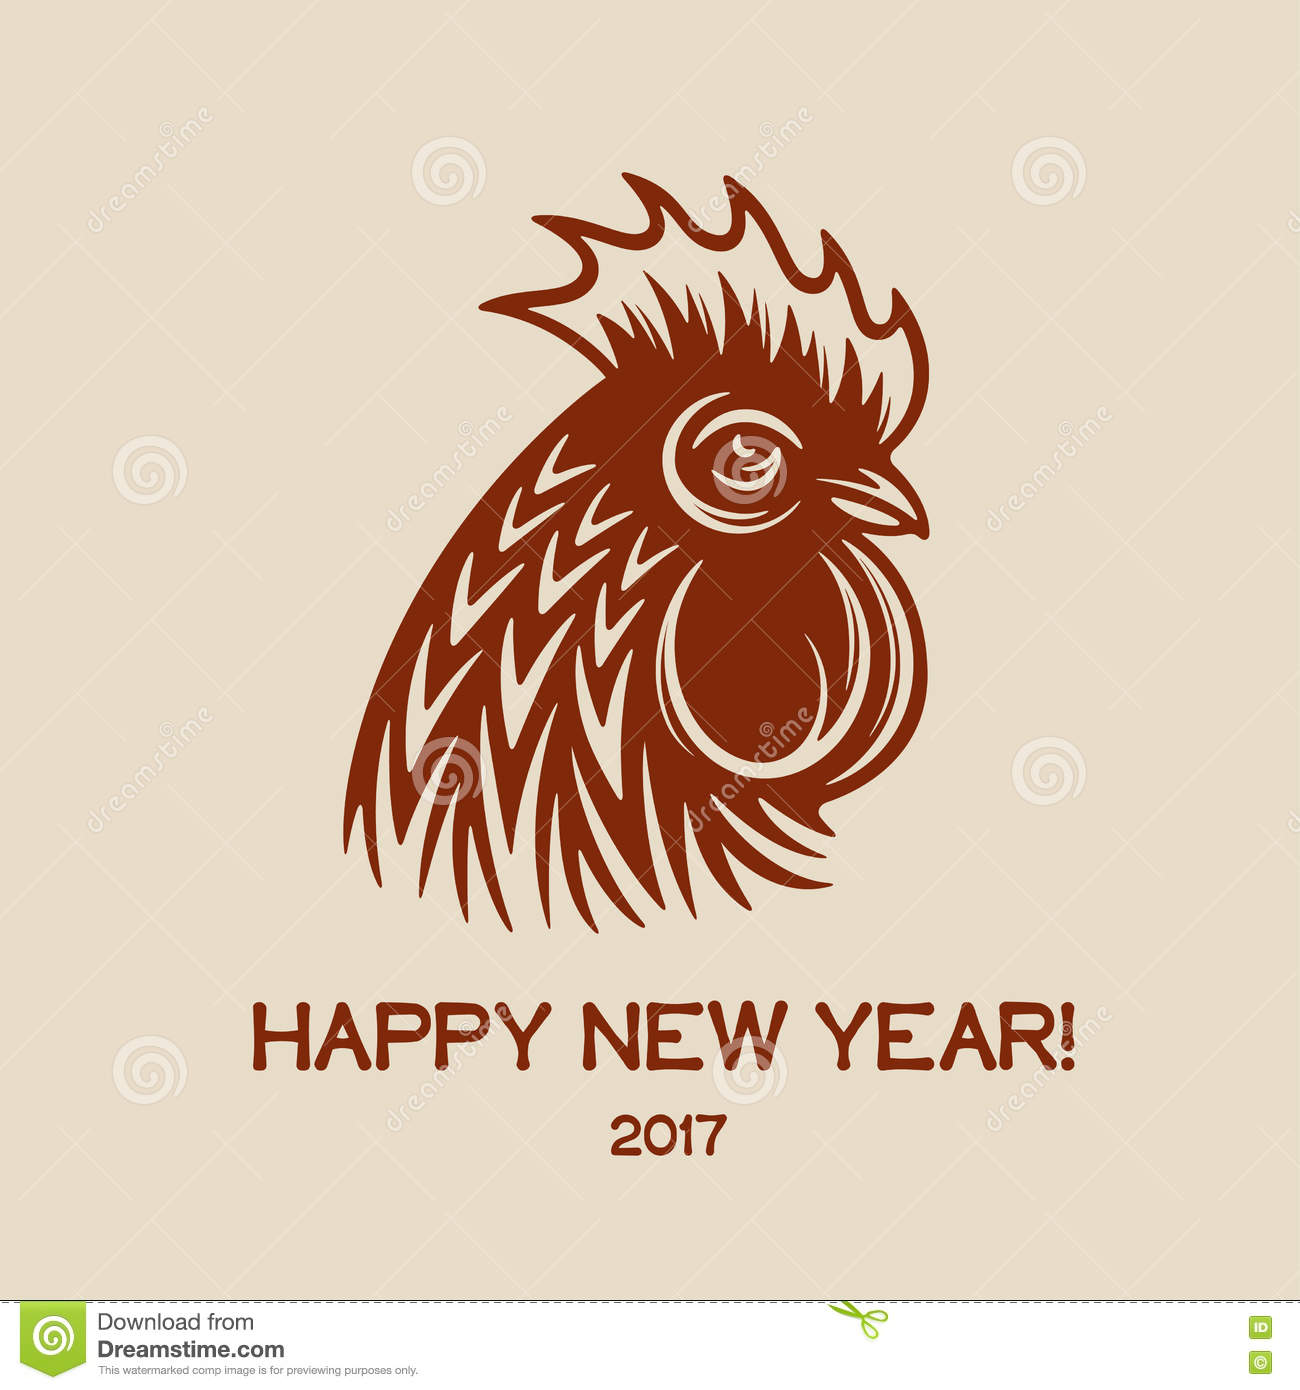 Happy new year greeting card with red rooster head and text 2017 happy new year greeting card with red rooster head and text 2017 vector vintage illustration kristyandbryce Images